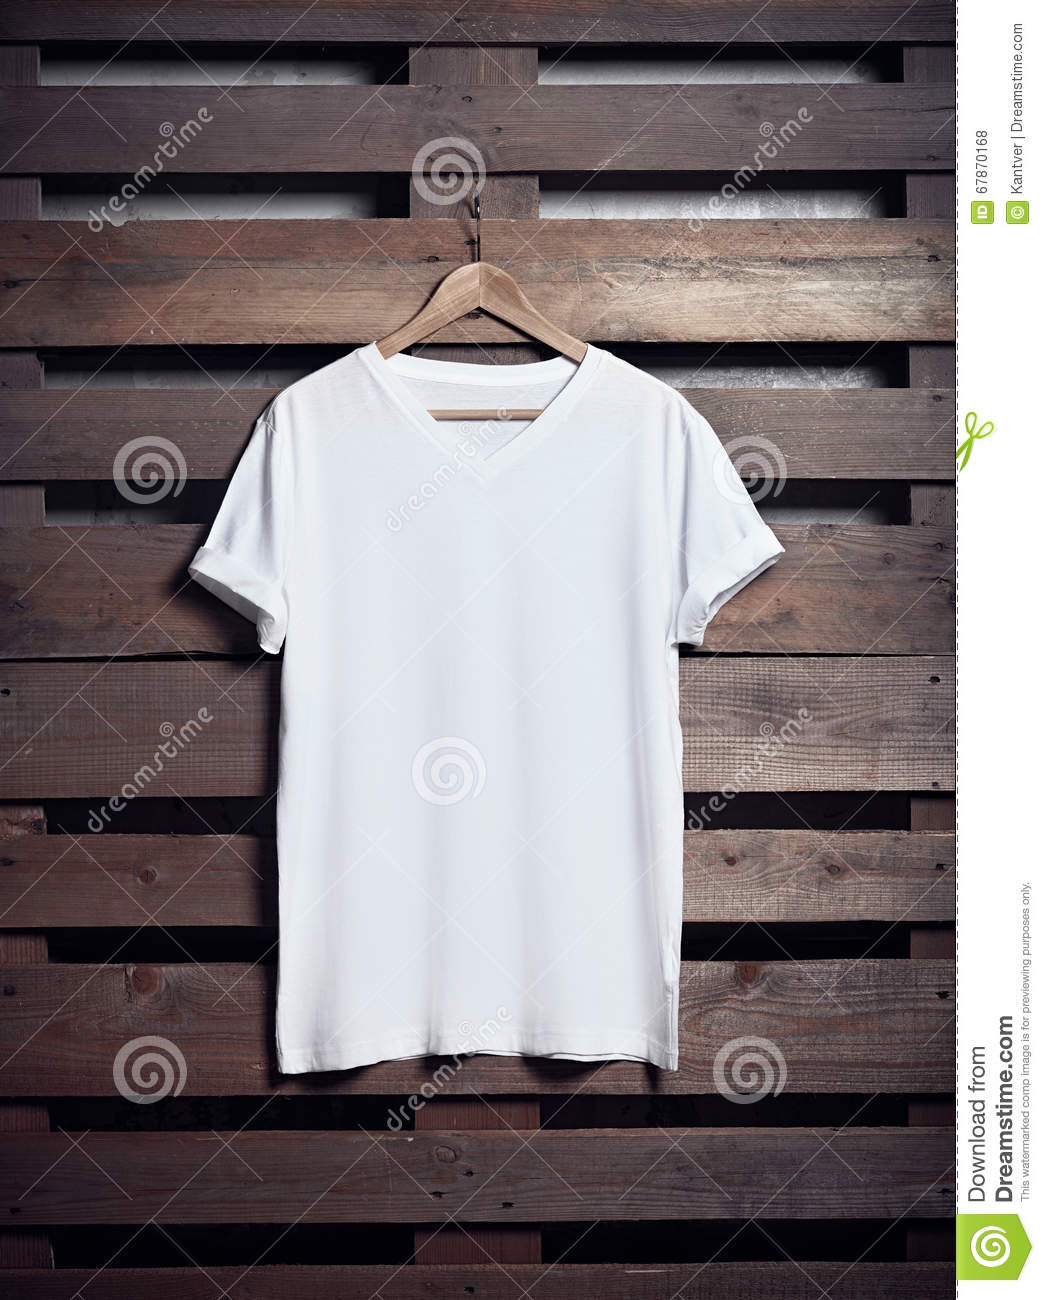 photo of white tshirt hanging on wood background vertical